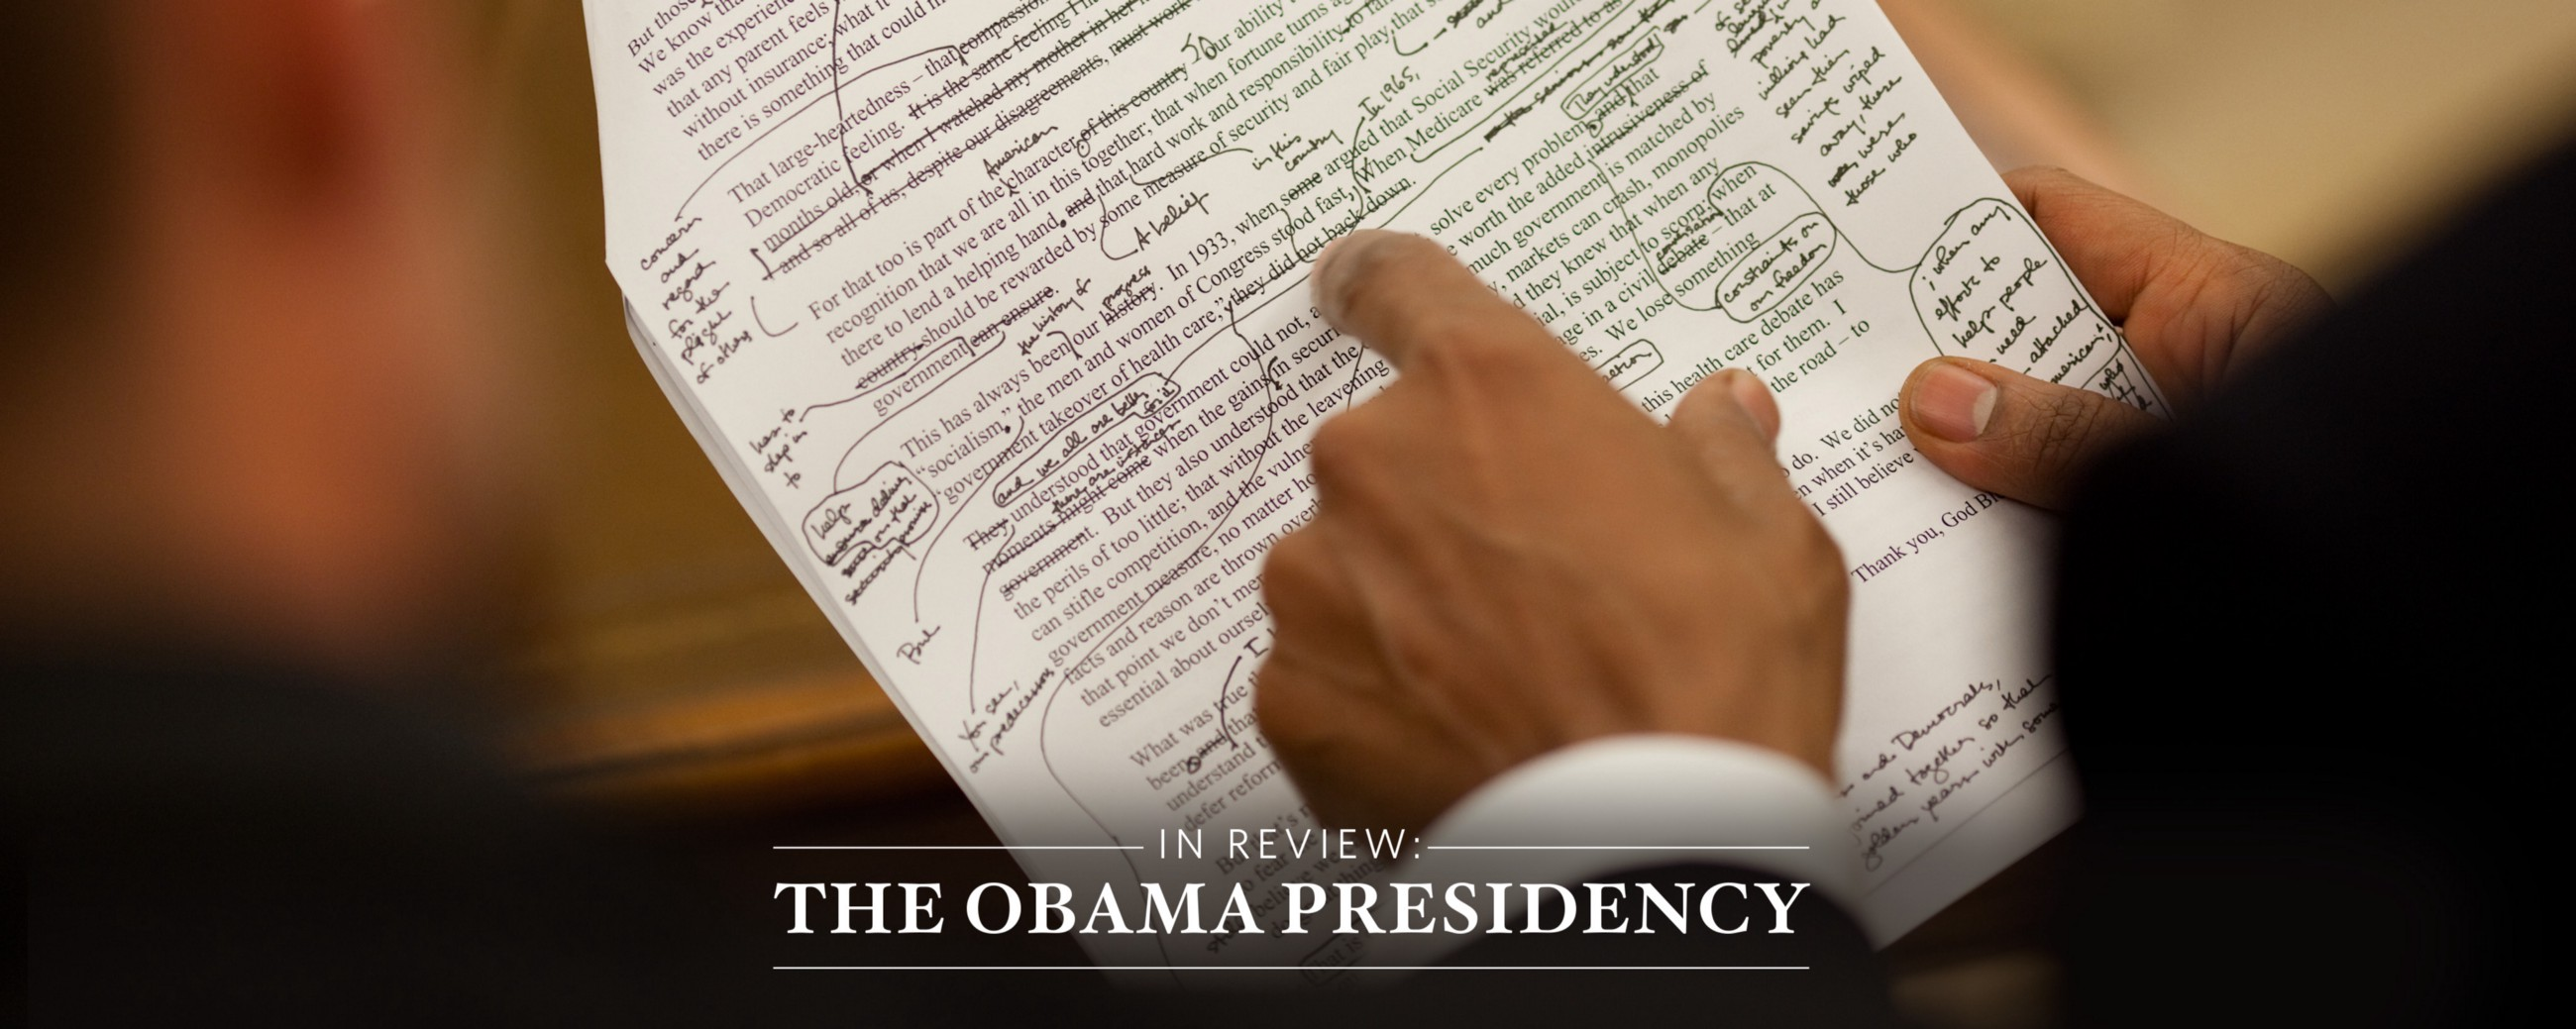 In Review  President Obama s Top Speeches as Chosen by His Speechwriters 12dcbc9b5809